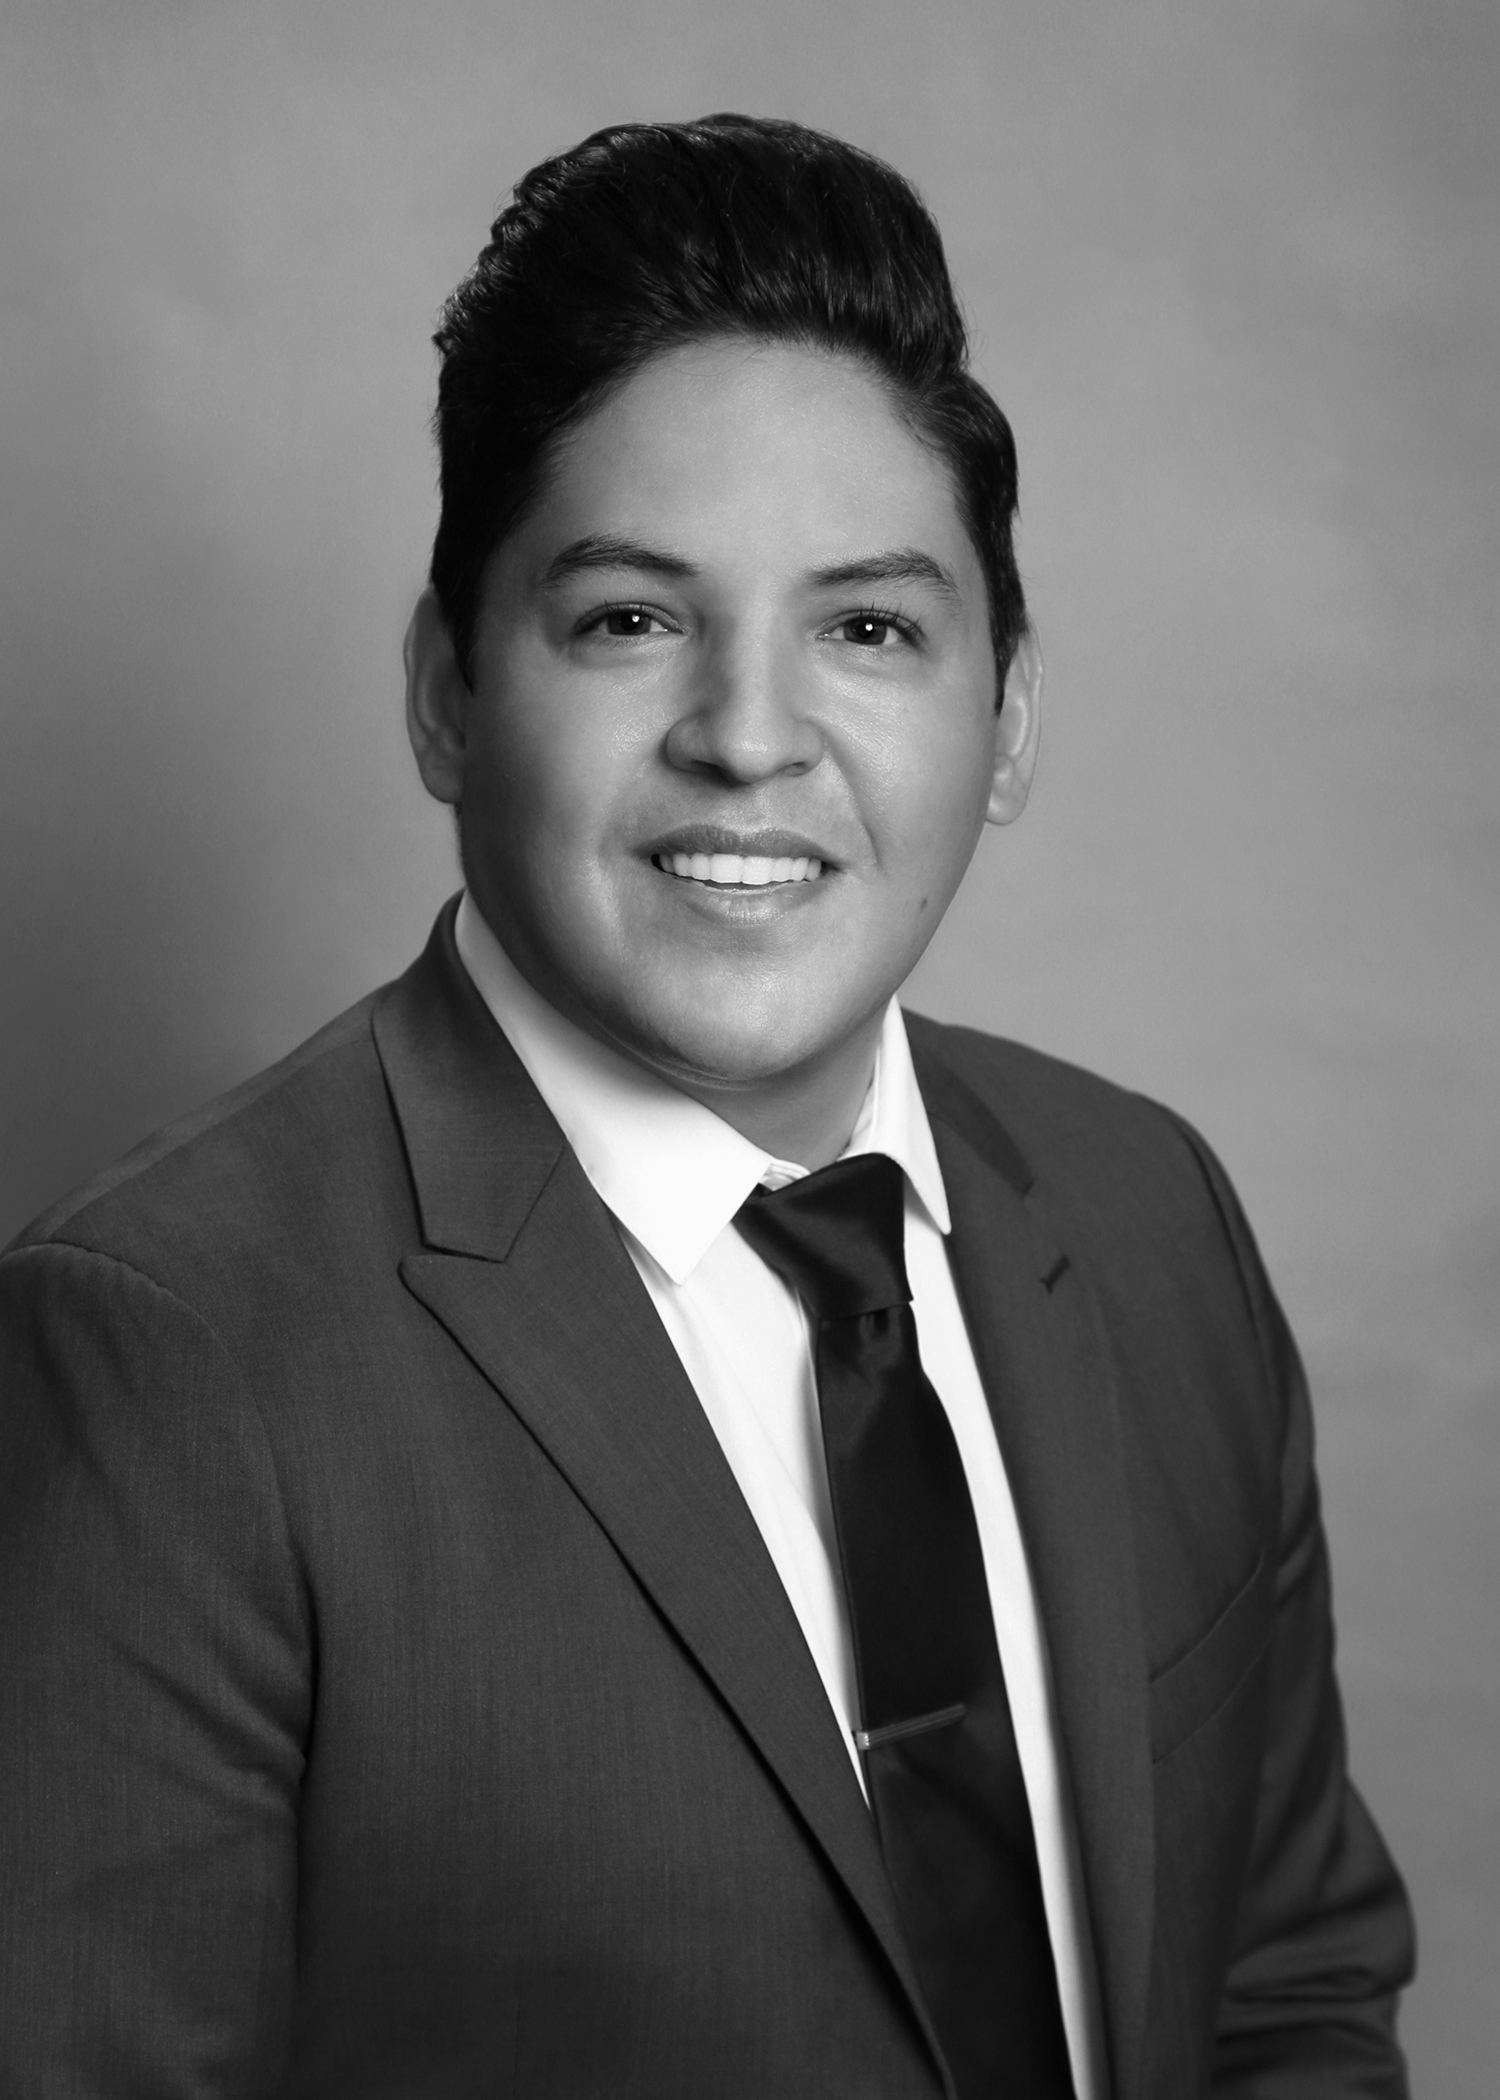 Councilor Eddy Morales - Black and White Photo